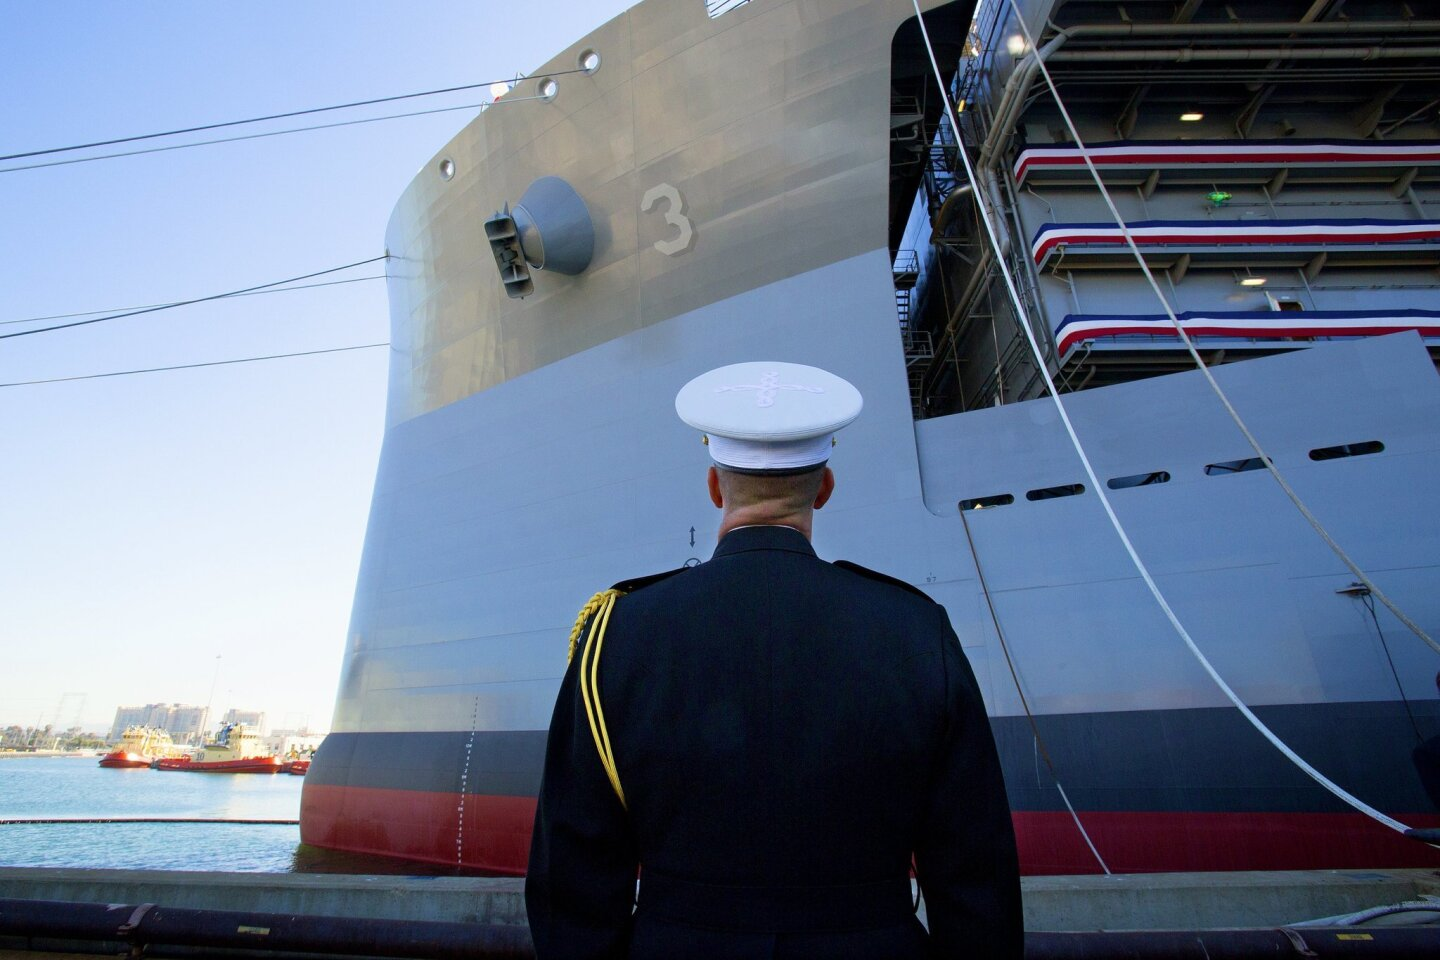 Following the christening of the USNS Lewis B. Puller (MLP 3 AFSB) a Marine walking by stopped for one last look at the Navy's newest ship named in honor of a U.S. Marine.